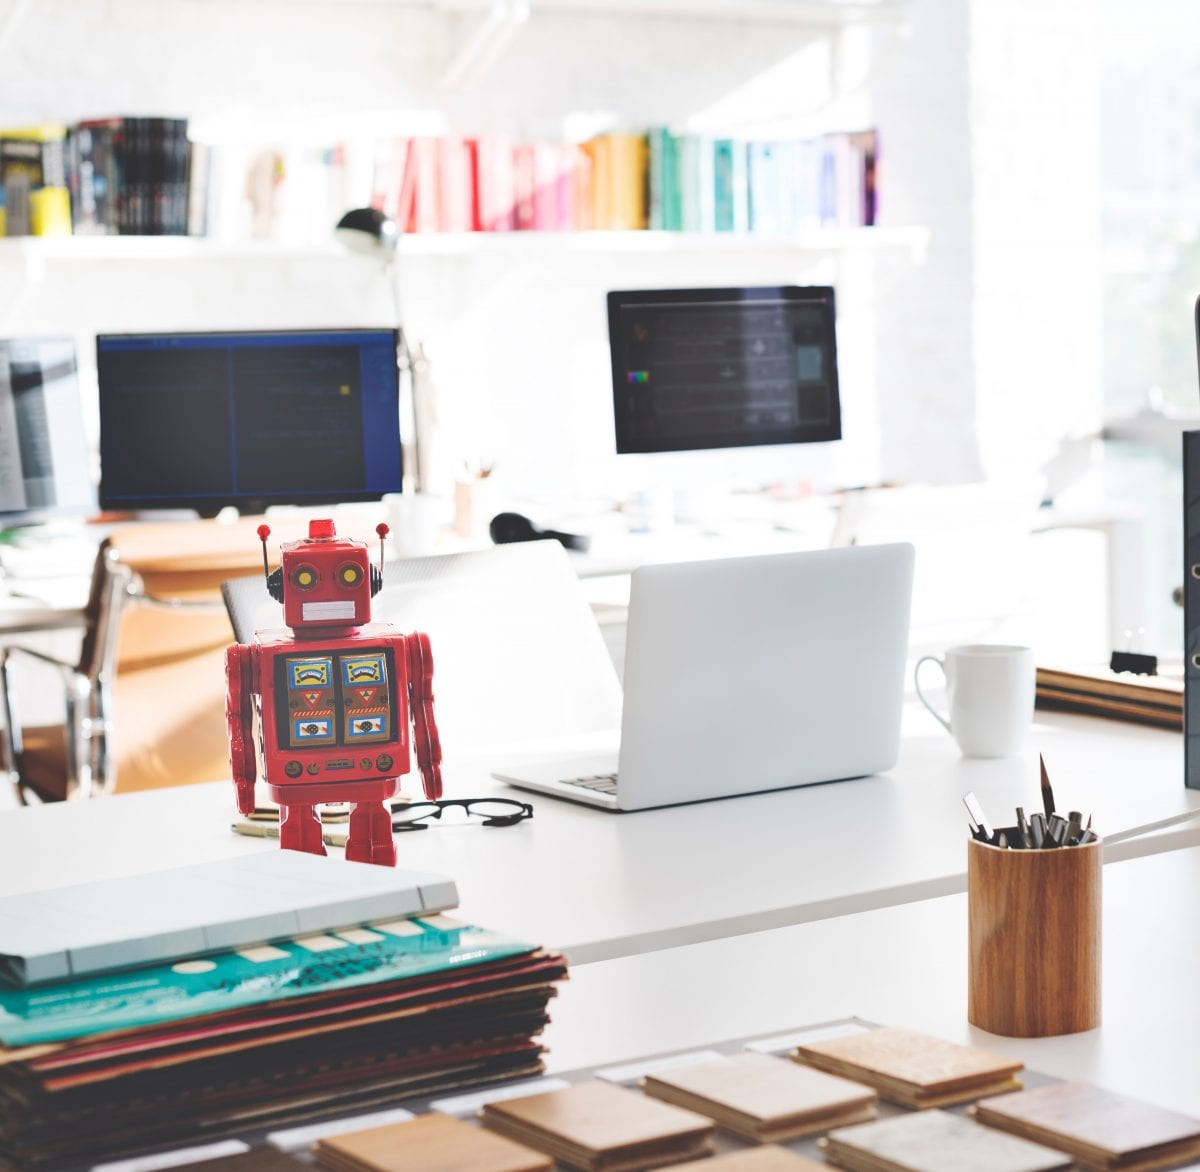 Red toy robot with yellow eyes on work desk with laptop, computer screens, books, pens, and papers